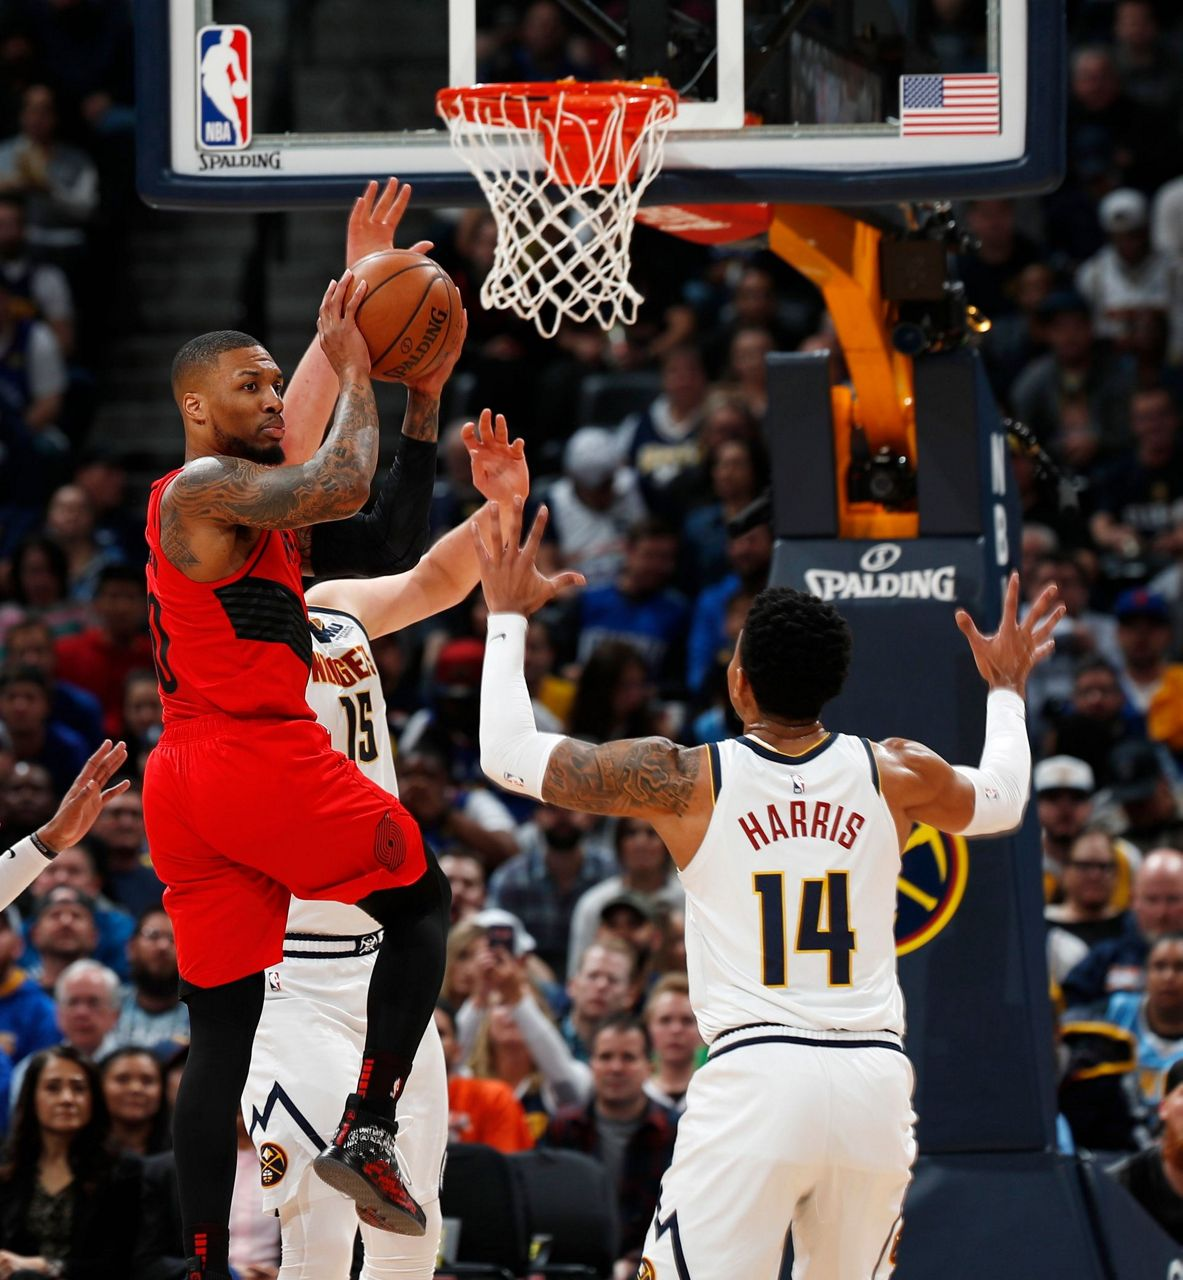 Blazers Game 3: McCollum Leads Blazers Past Cold Nuggets, 97-90